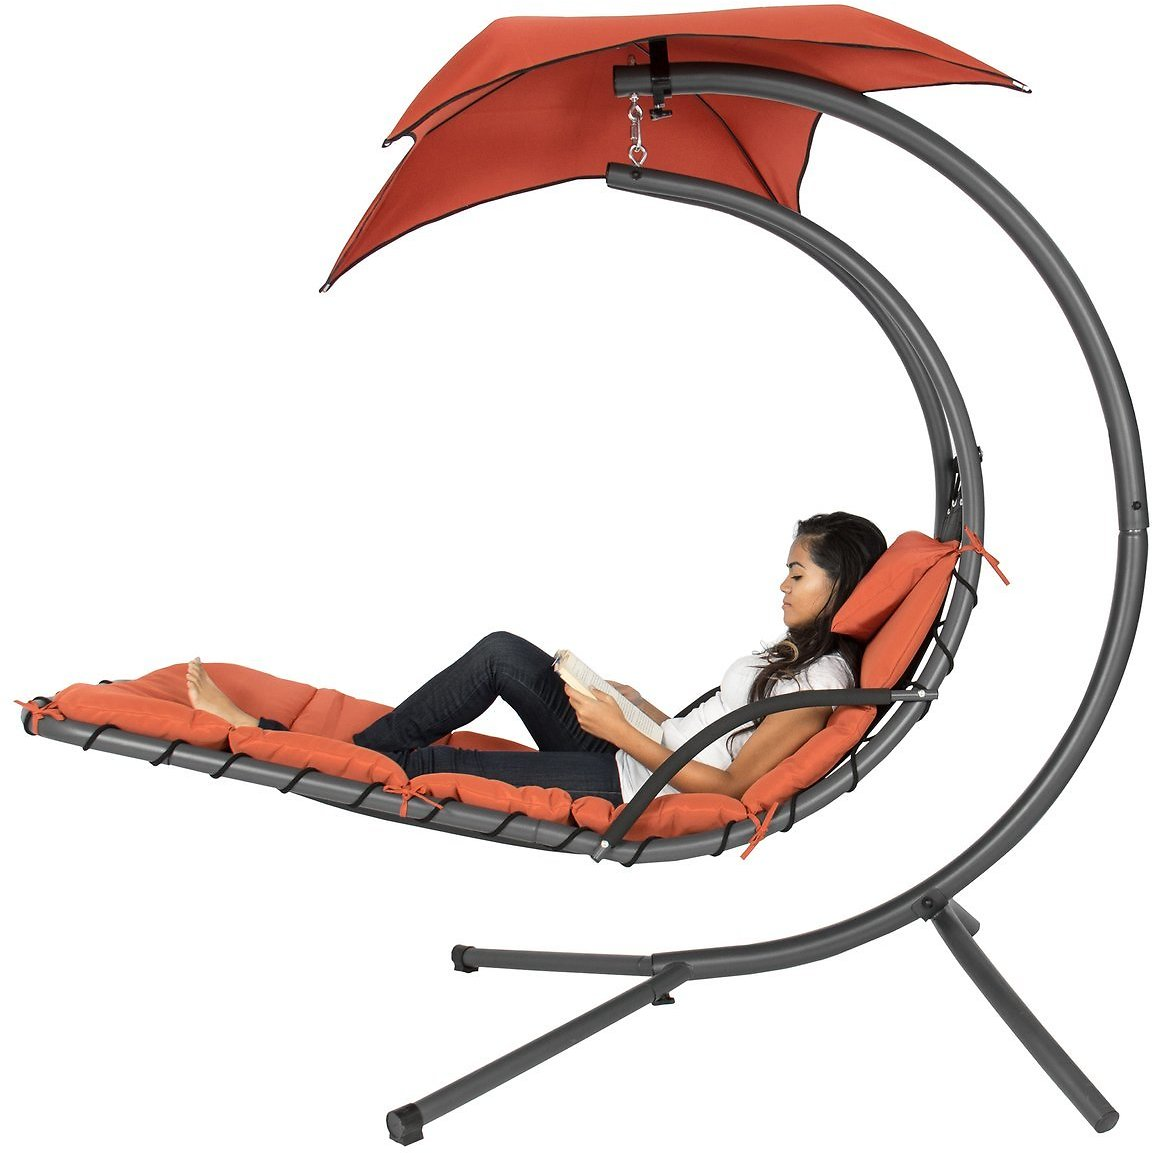 (Ships Free) Hanging Curved Chaise Lounge Chair w/ Built-In Pillow, Removable Canopy